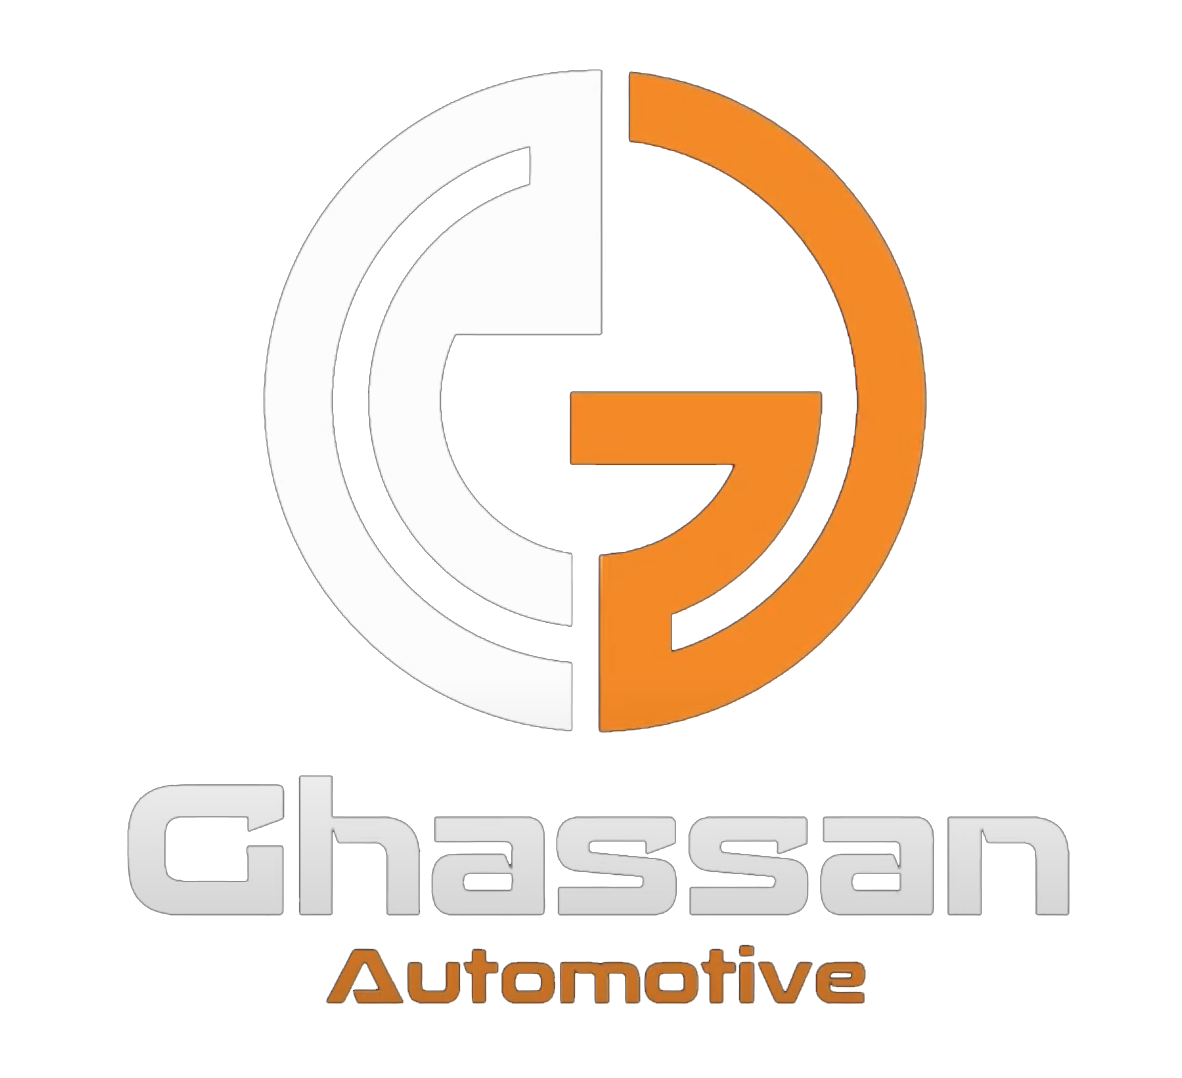 Ghassan Automotive